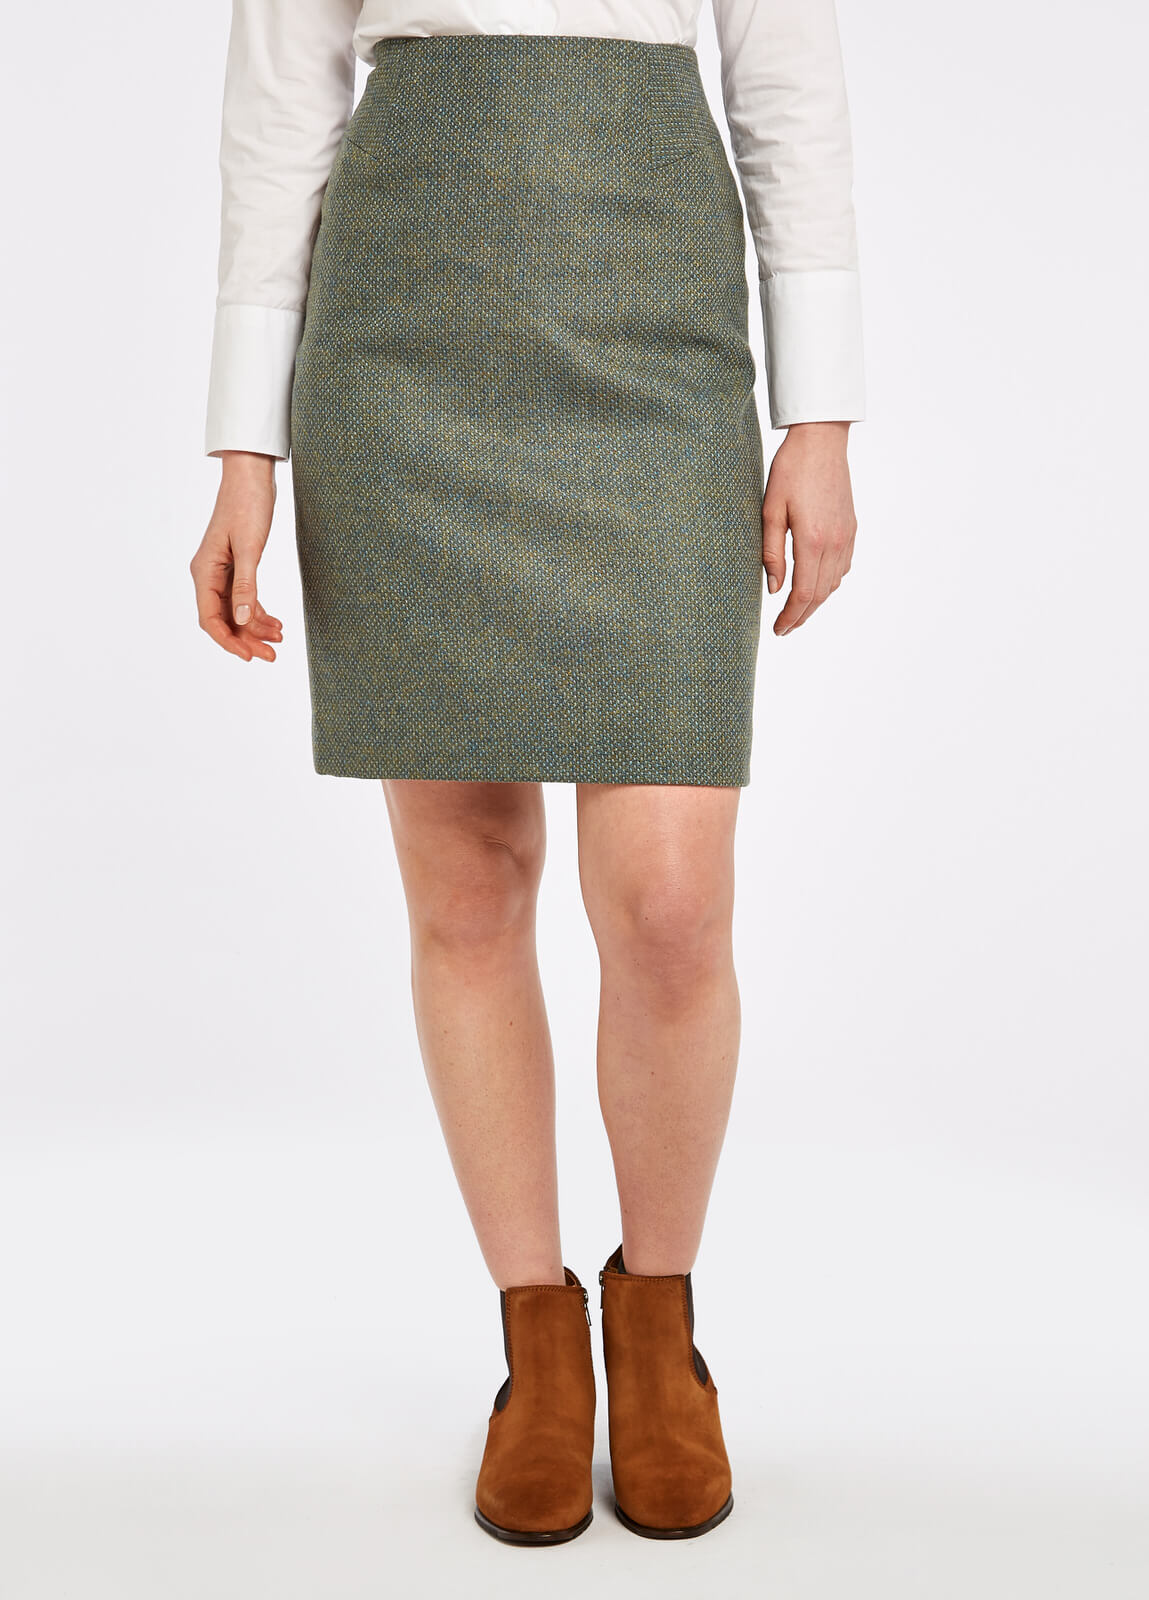 Dubarry_Fern_Tweed_Skirt_Rowan_on_model